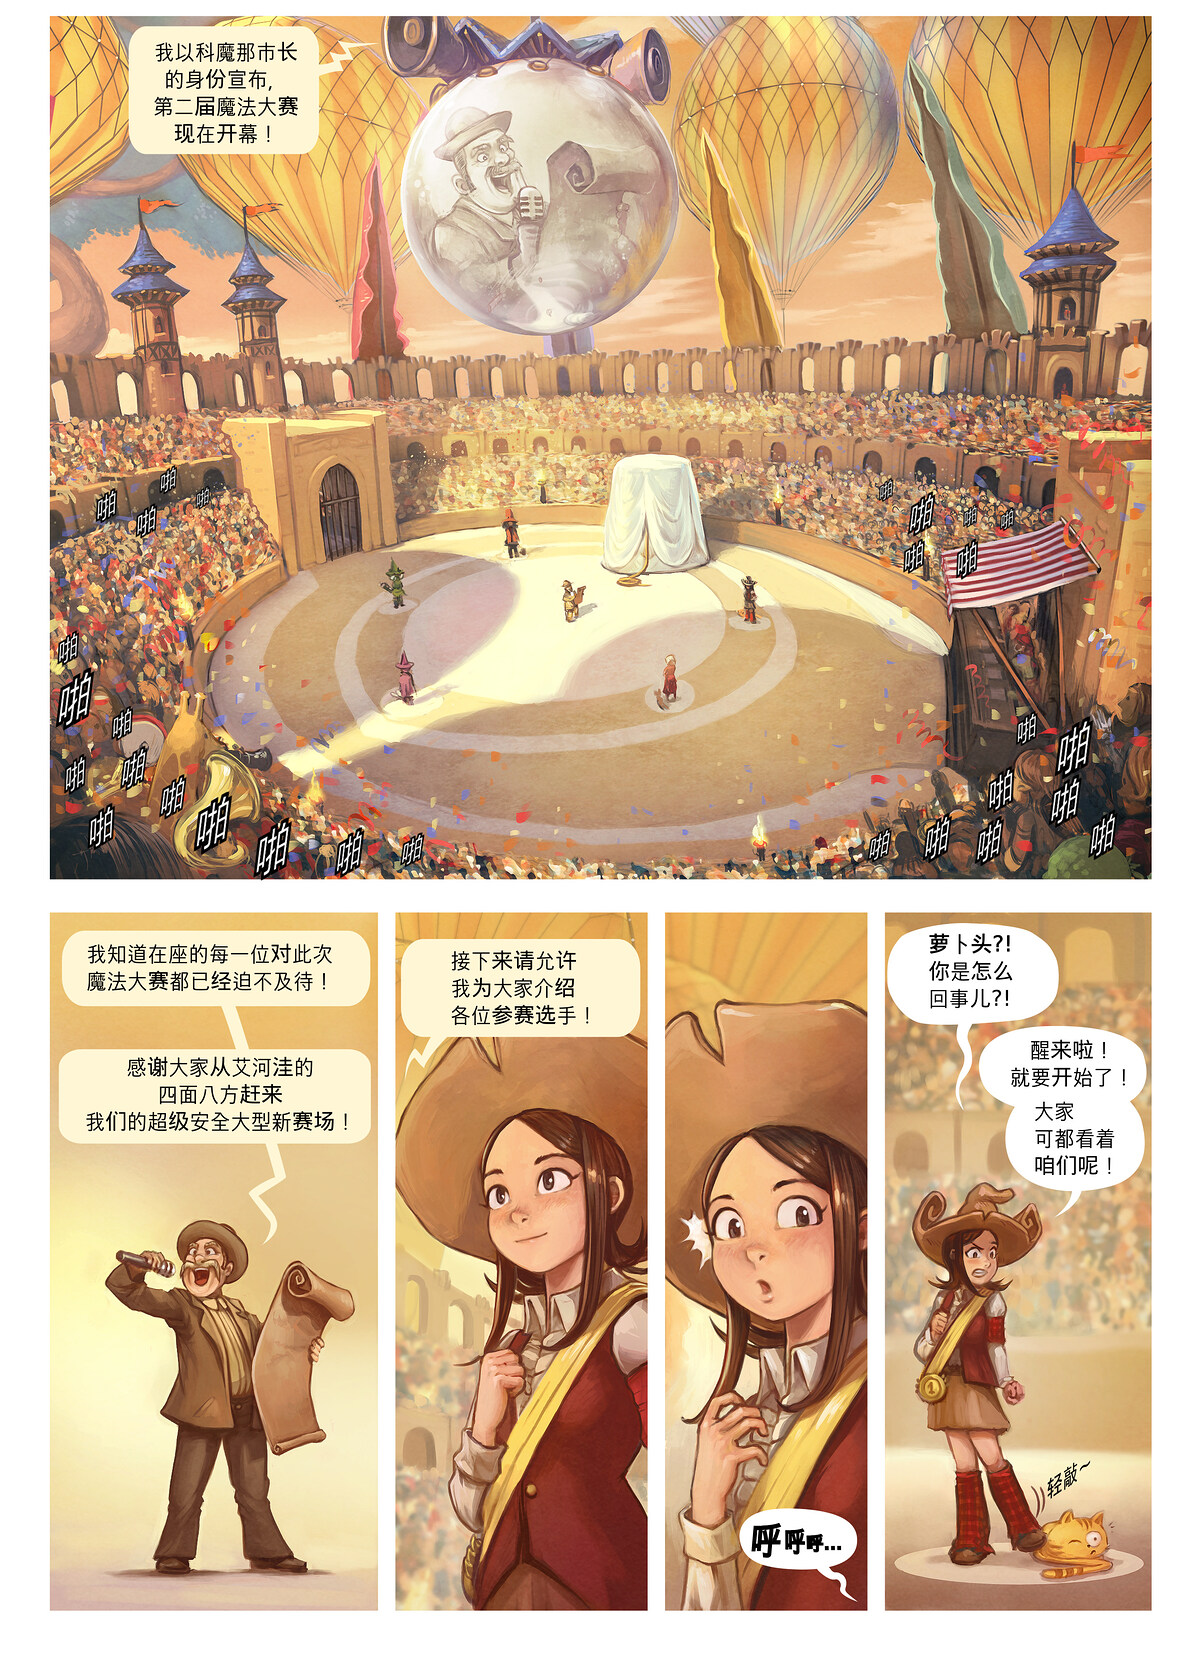 A webcomic page of Pepper&Carrot, 漫画全集 21 [cn], 页面 3